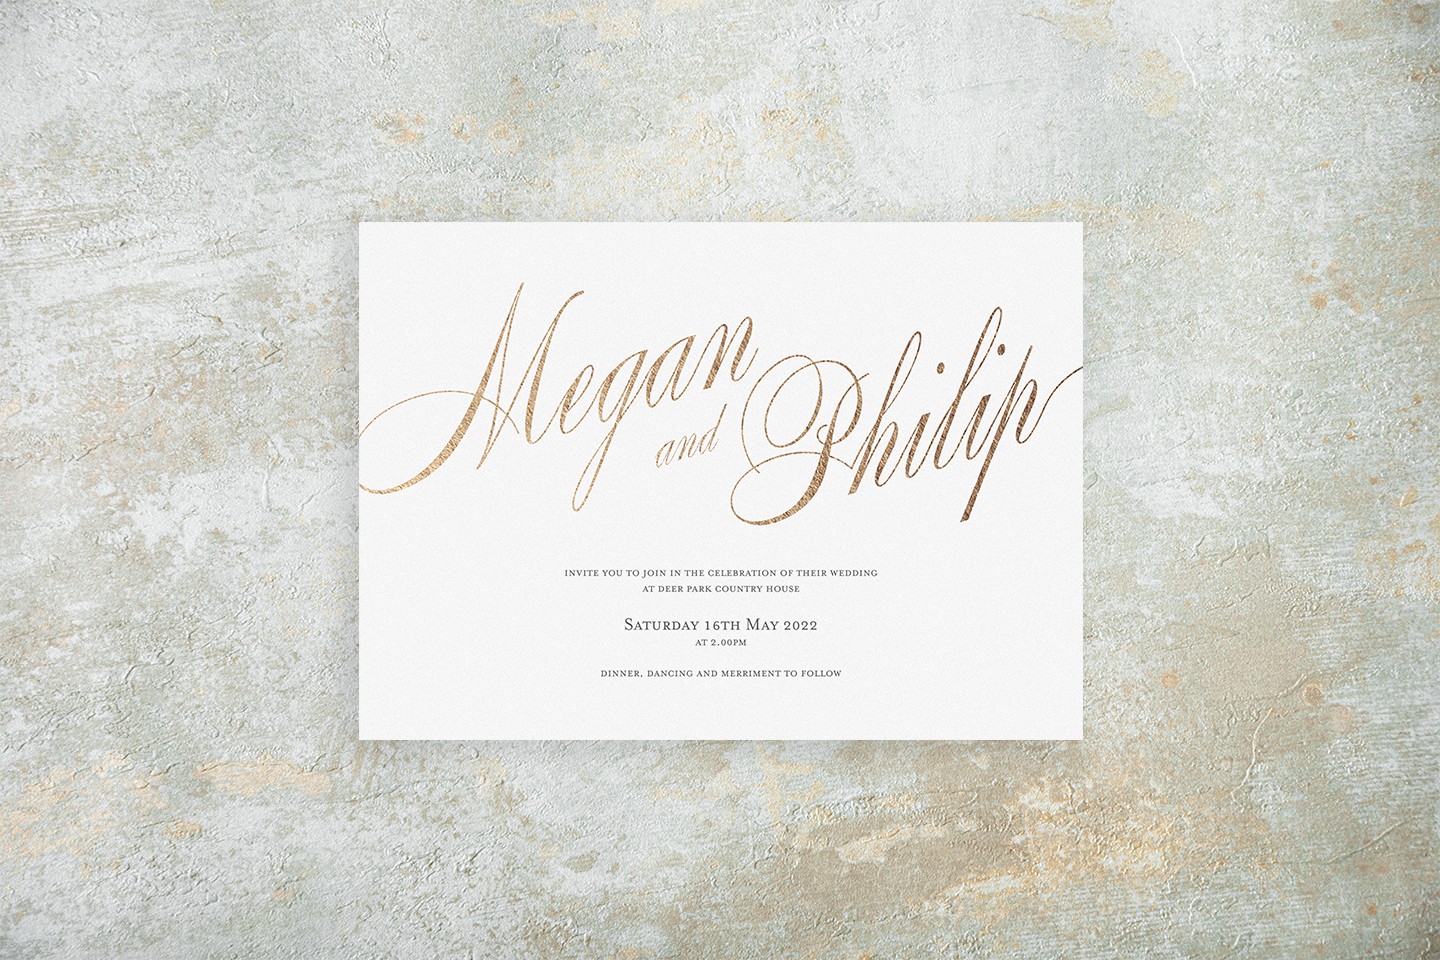 Timeless Classic Wedding Invitations - Pemberley Names | Top Wedding Stationery Trends 2020 | Foil Invite Company Blog